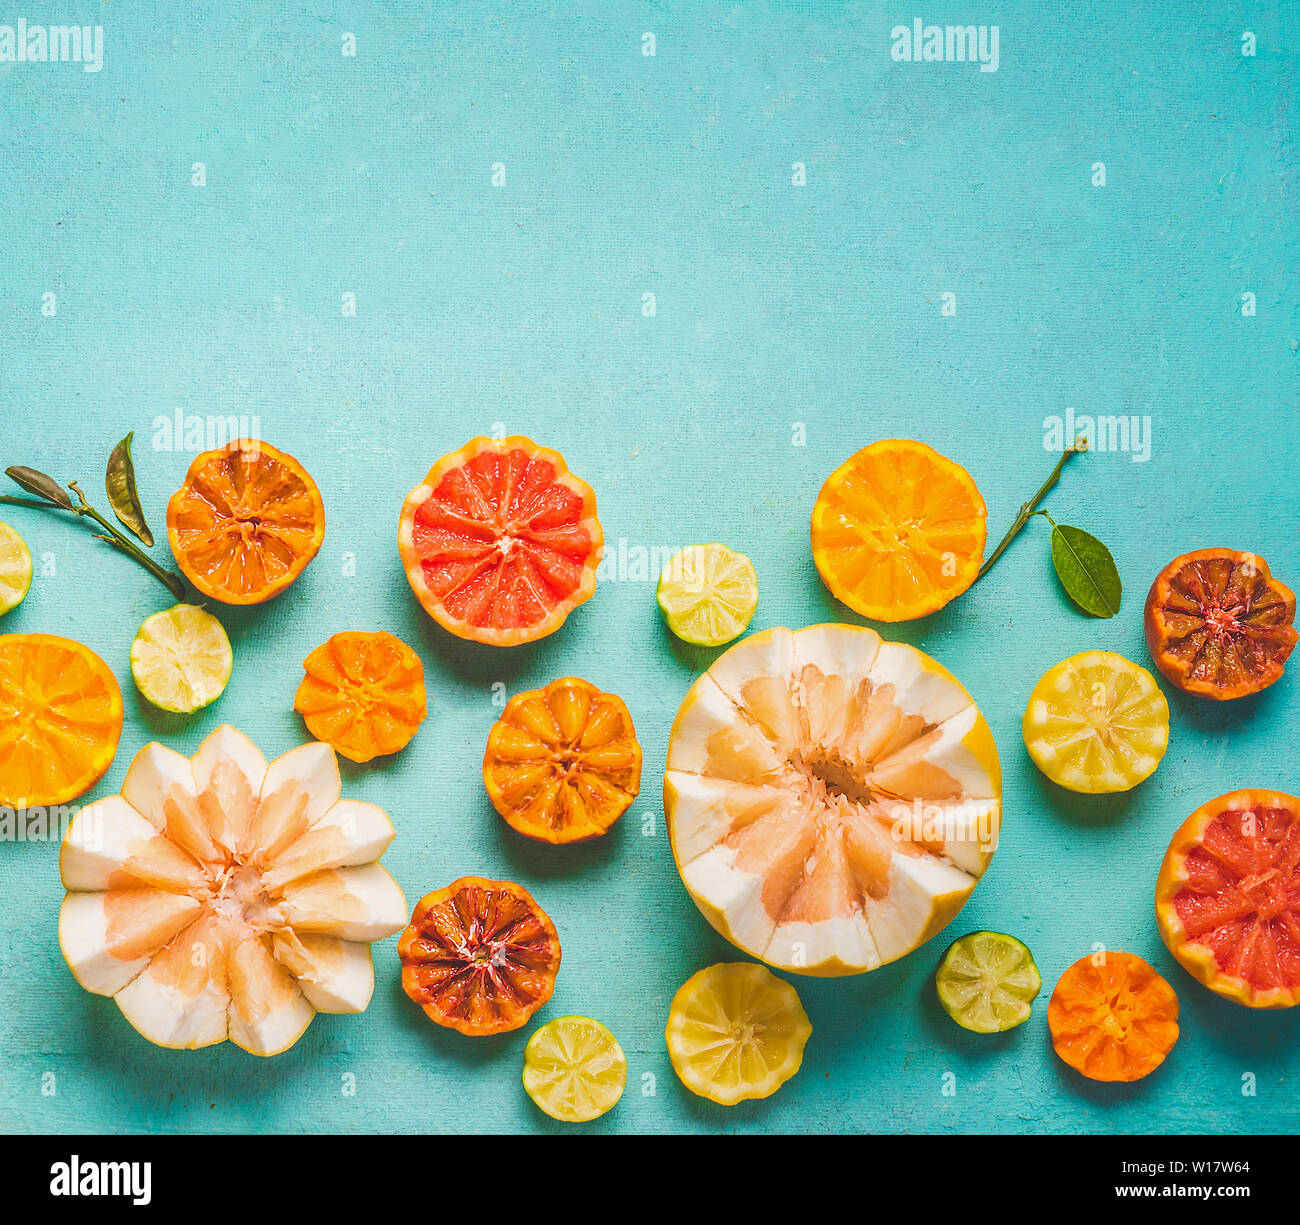 Various colorful citrus fruits halves with green leaves on light blue background, top view, border with copy space for your design. Flat lay. Healthy Stock Photo